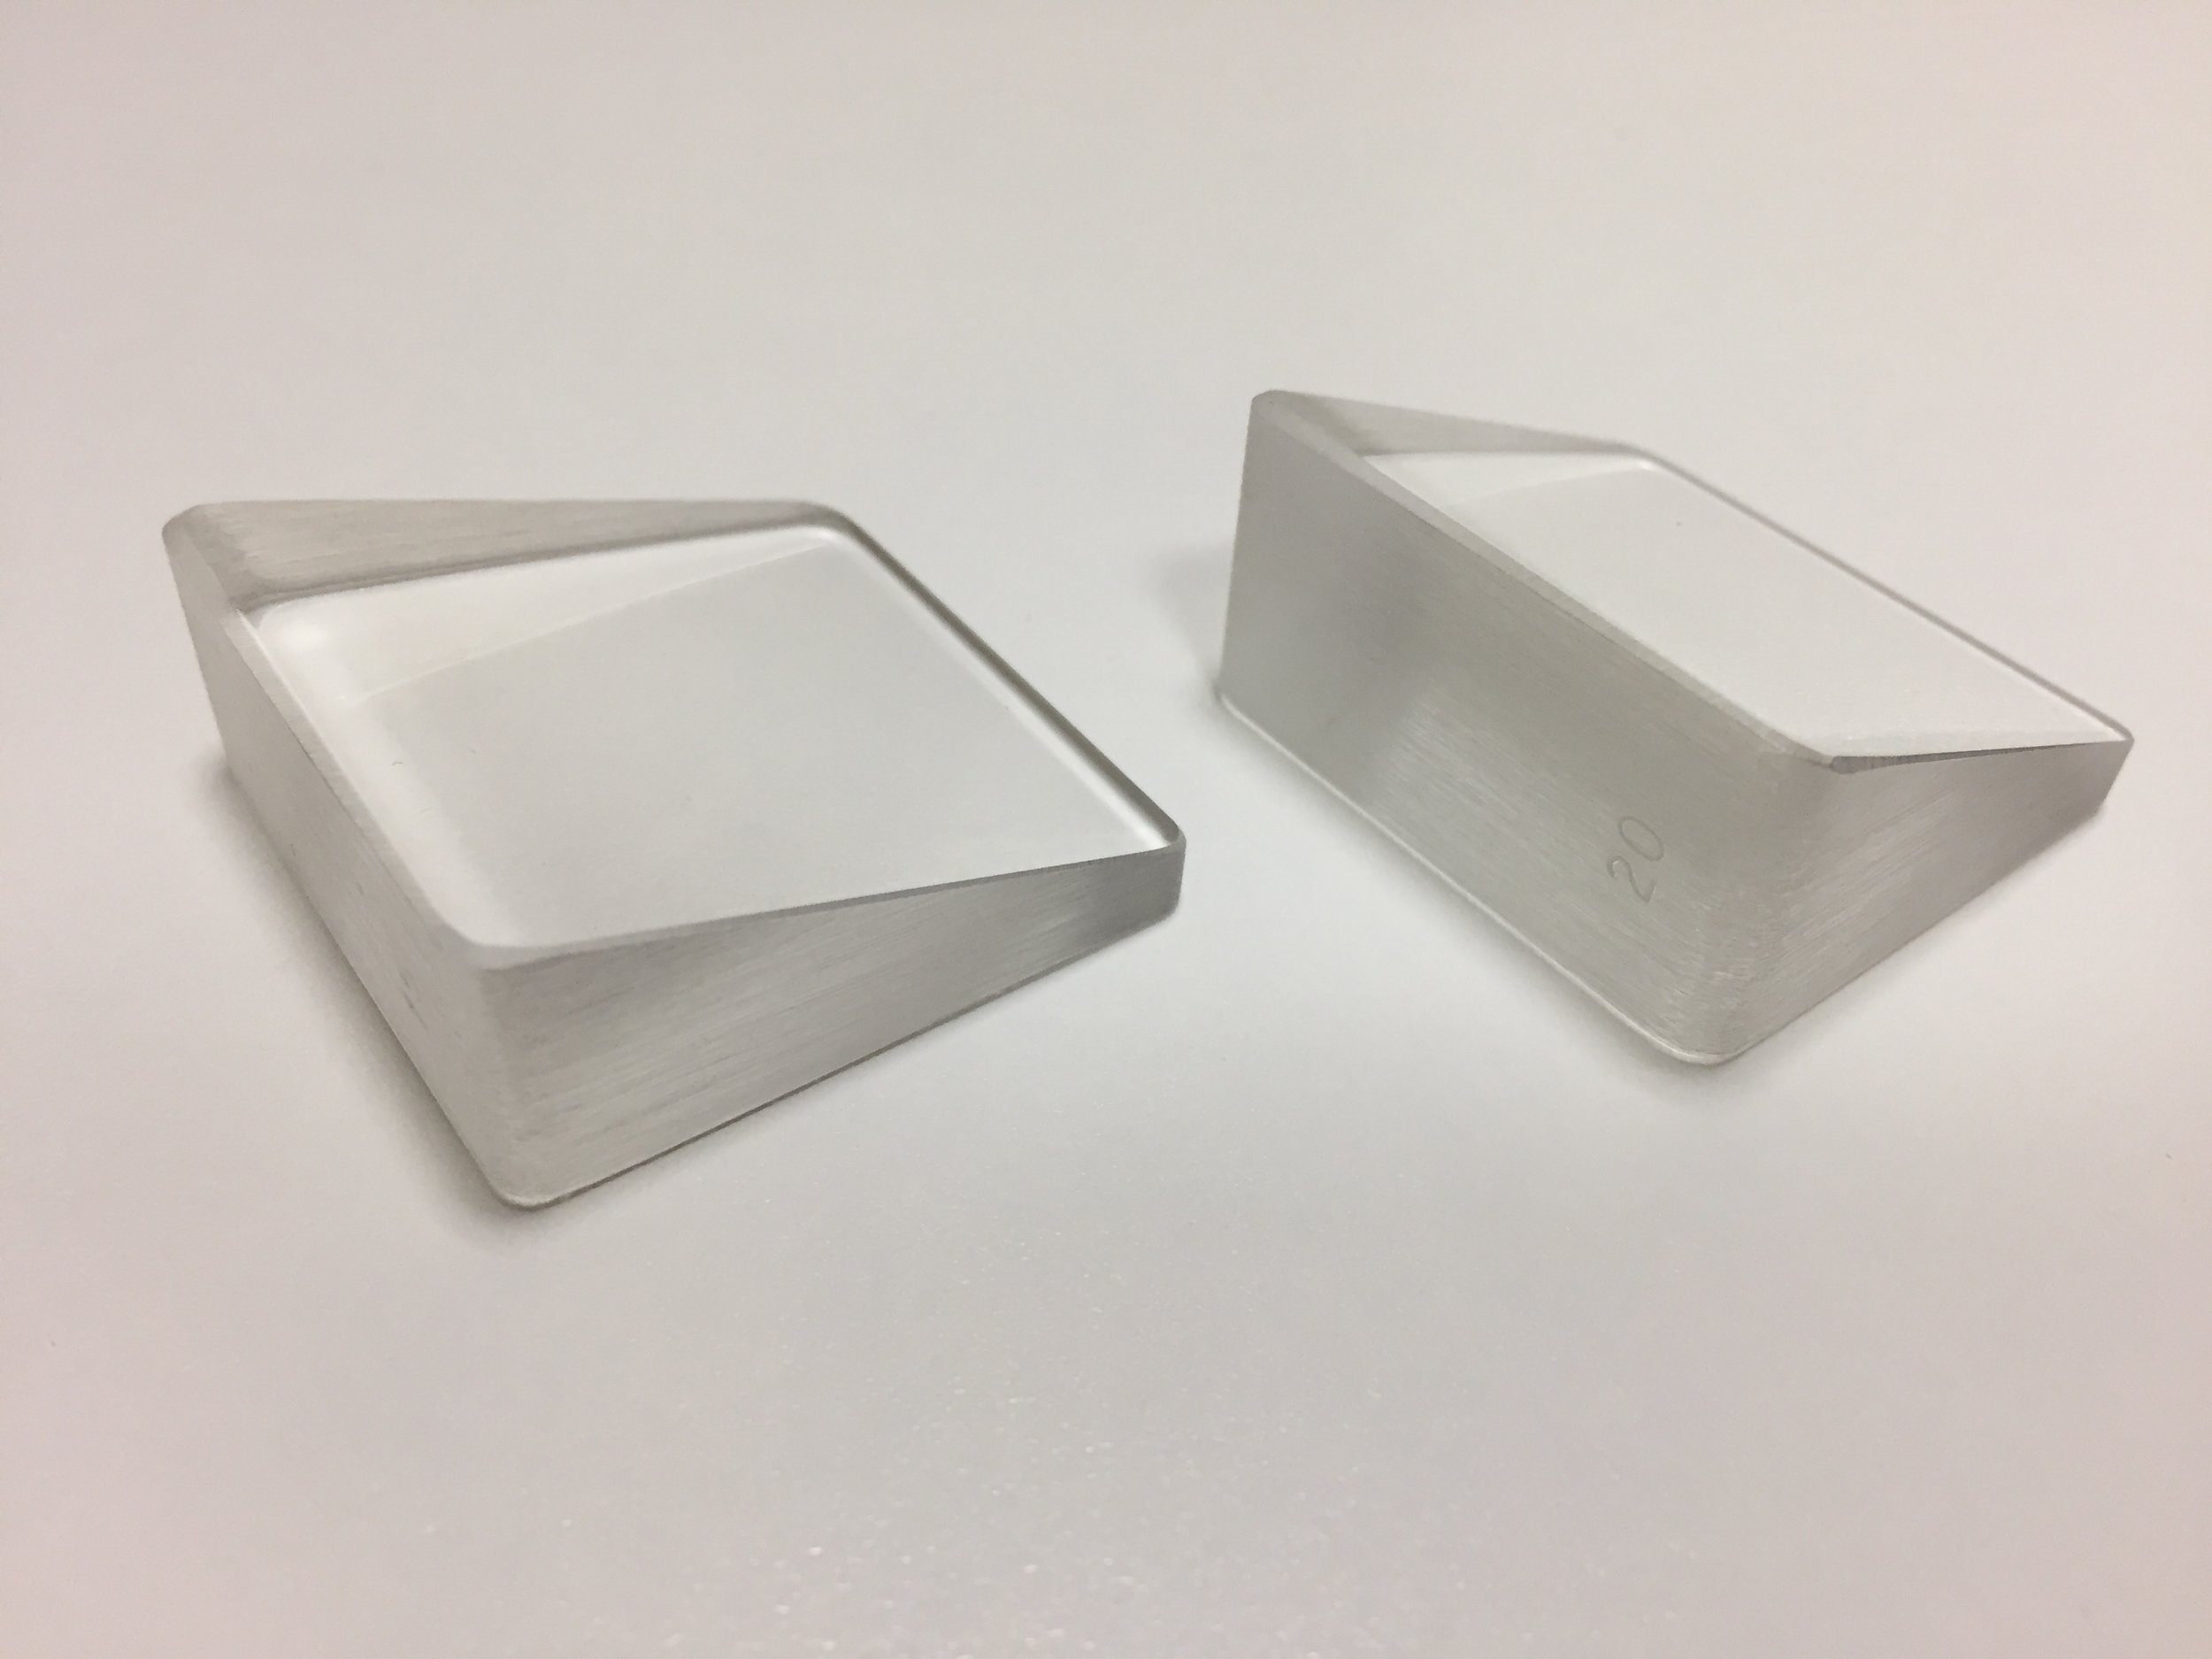 Prisms come in different sizes, allowing us to measure eye misalignment.